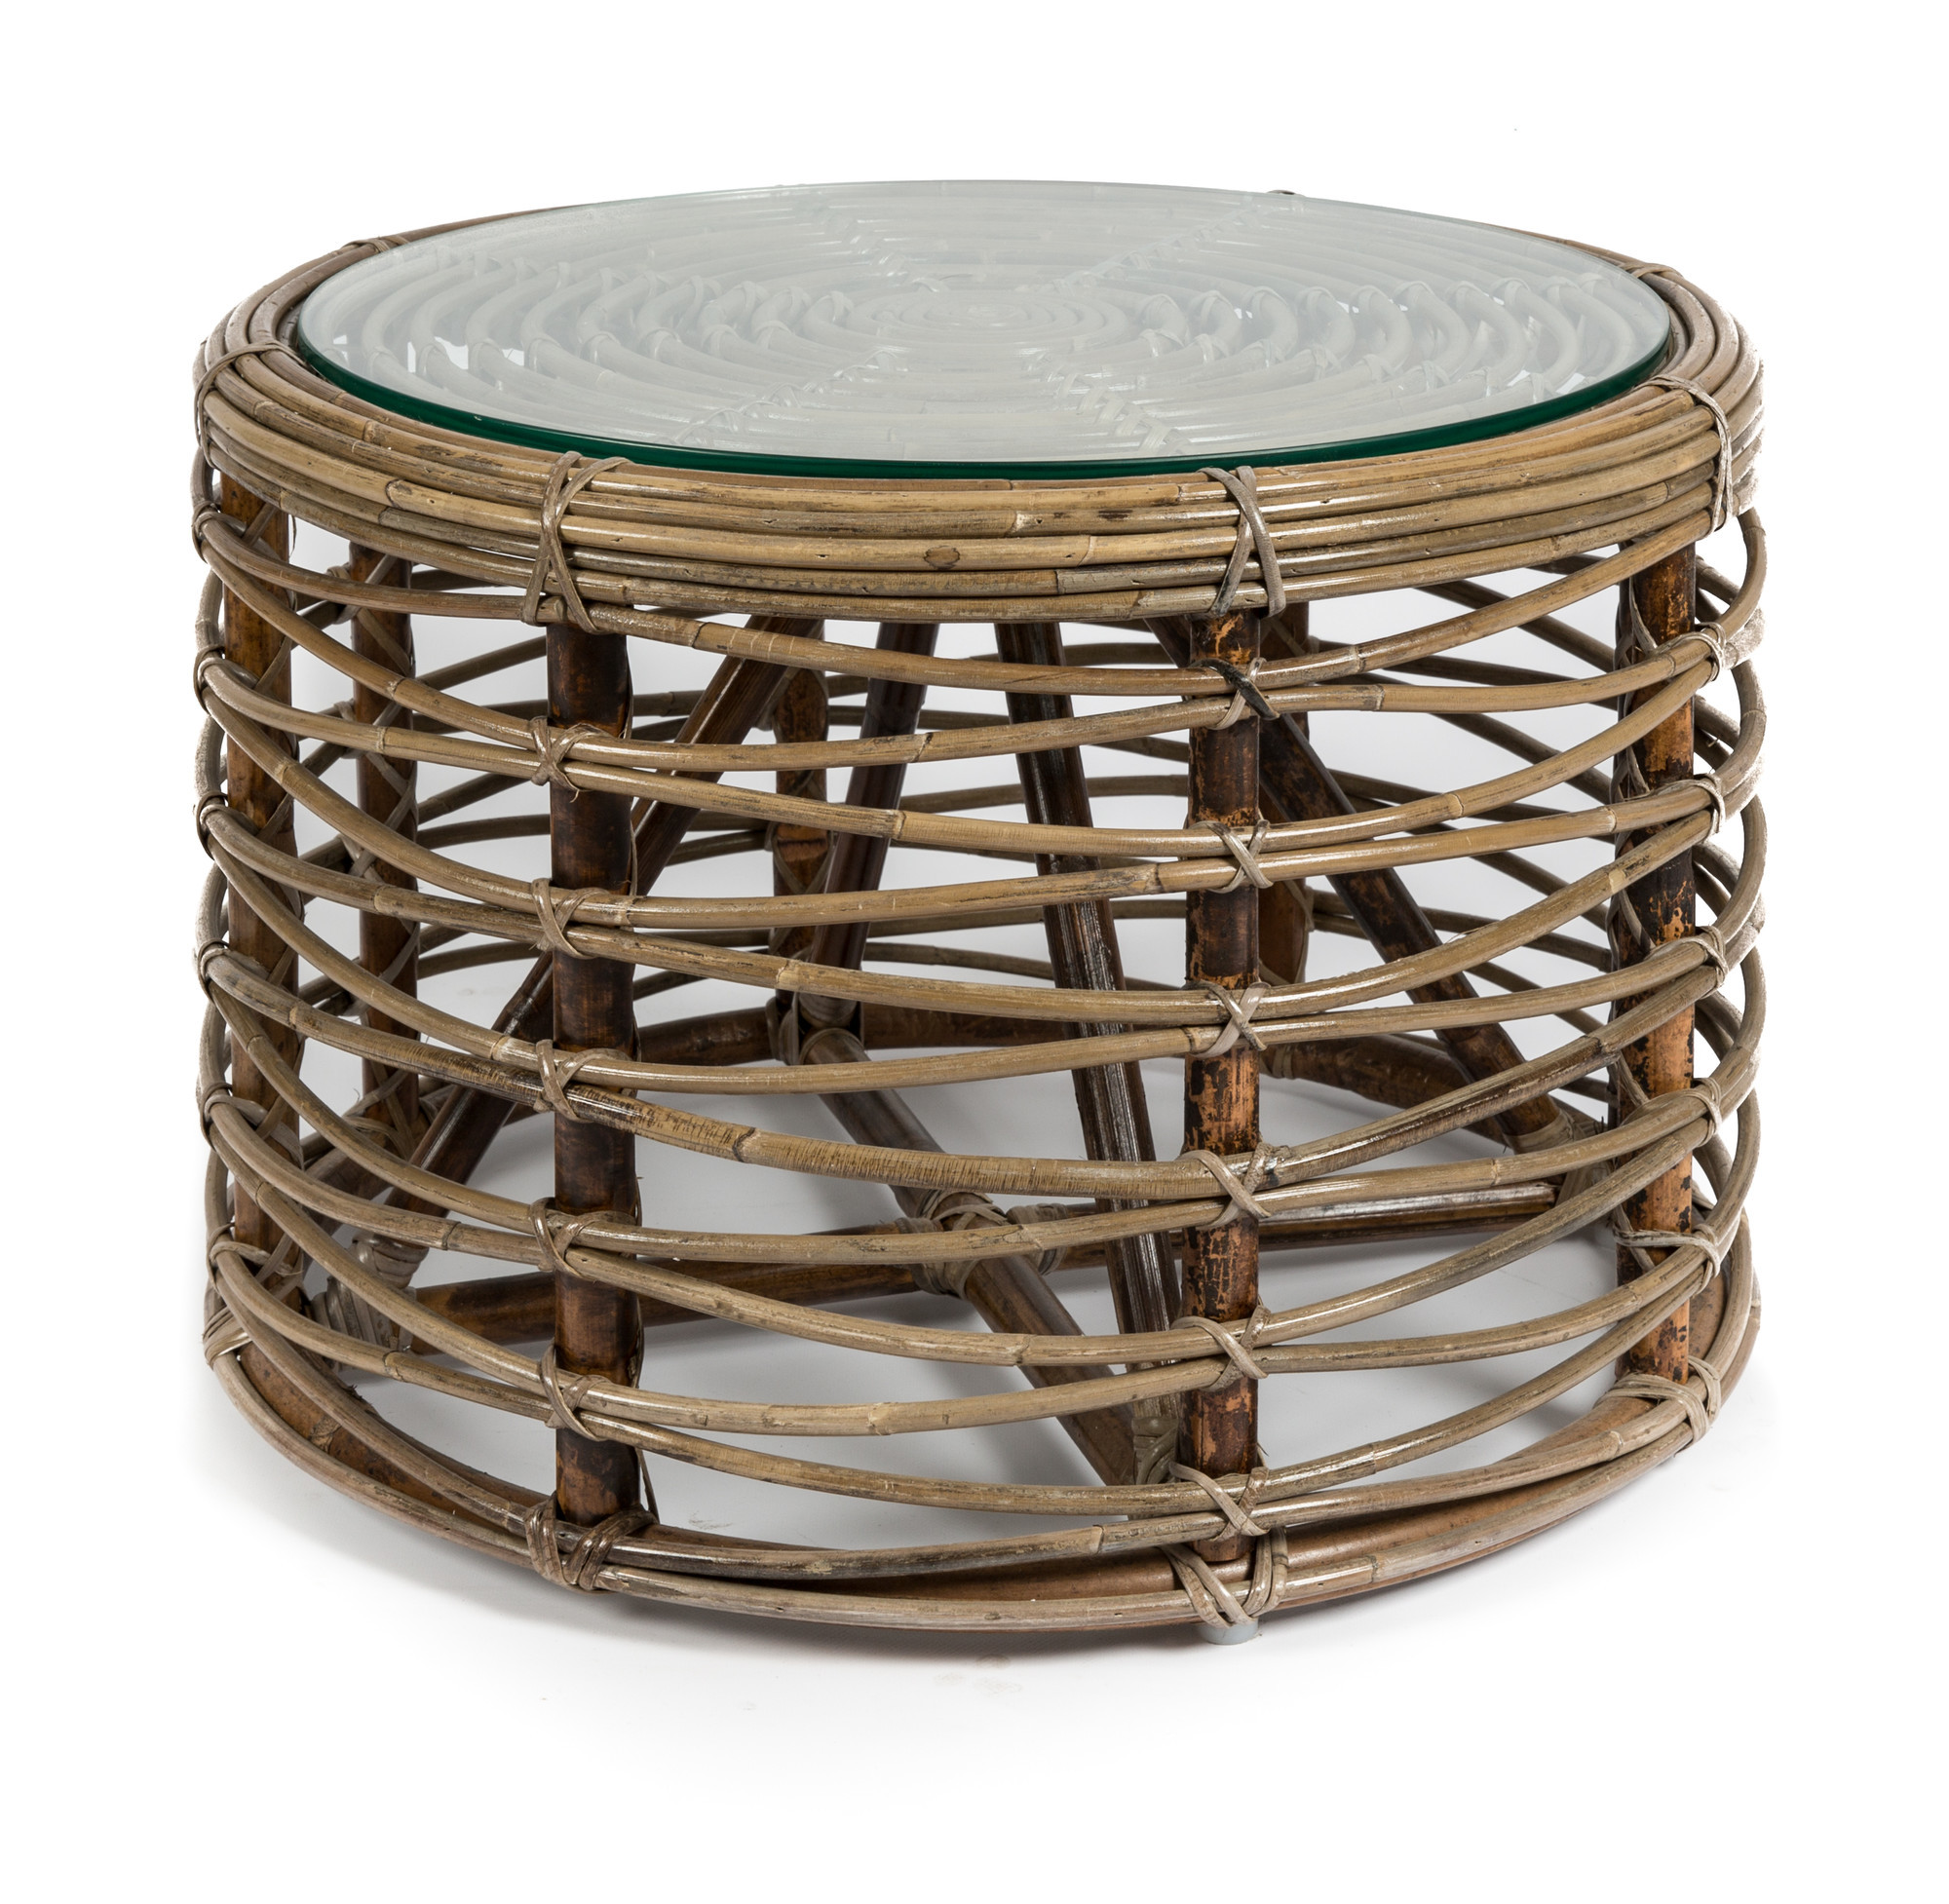 Woven Rattan Coffee Table: NEW Woven Rattan Round Coffee Table